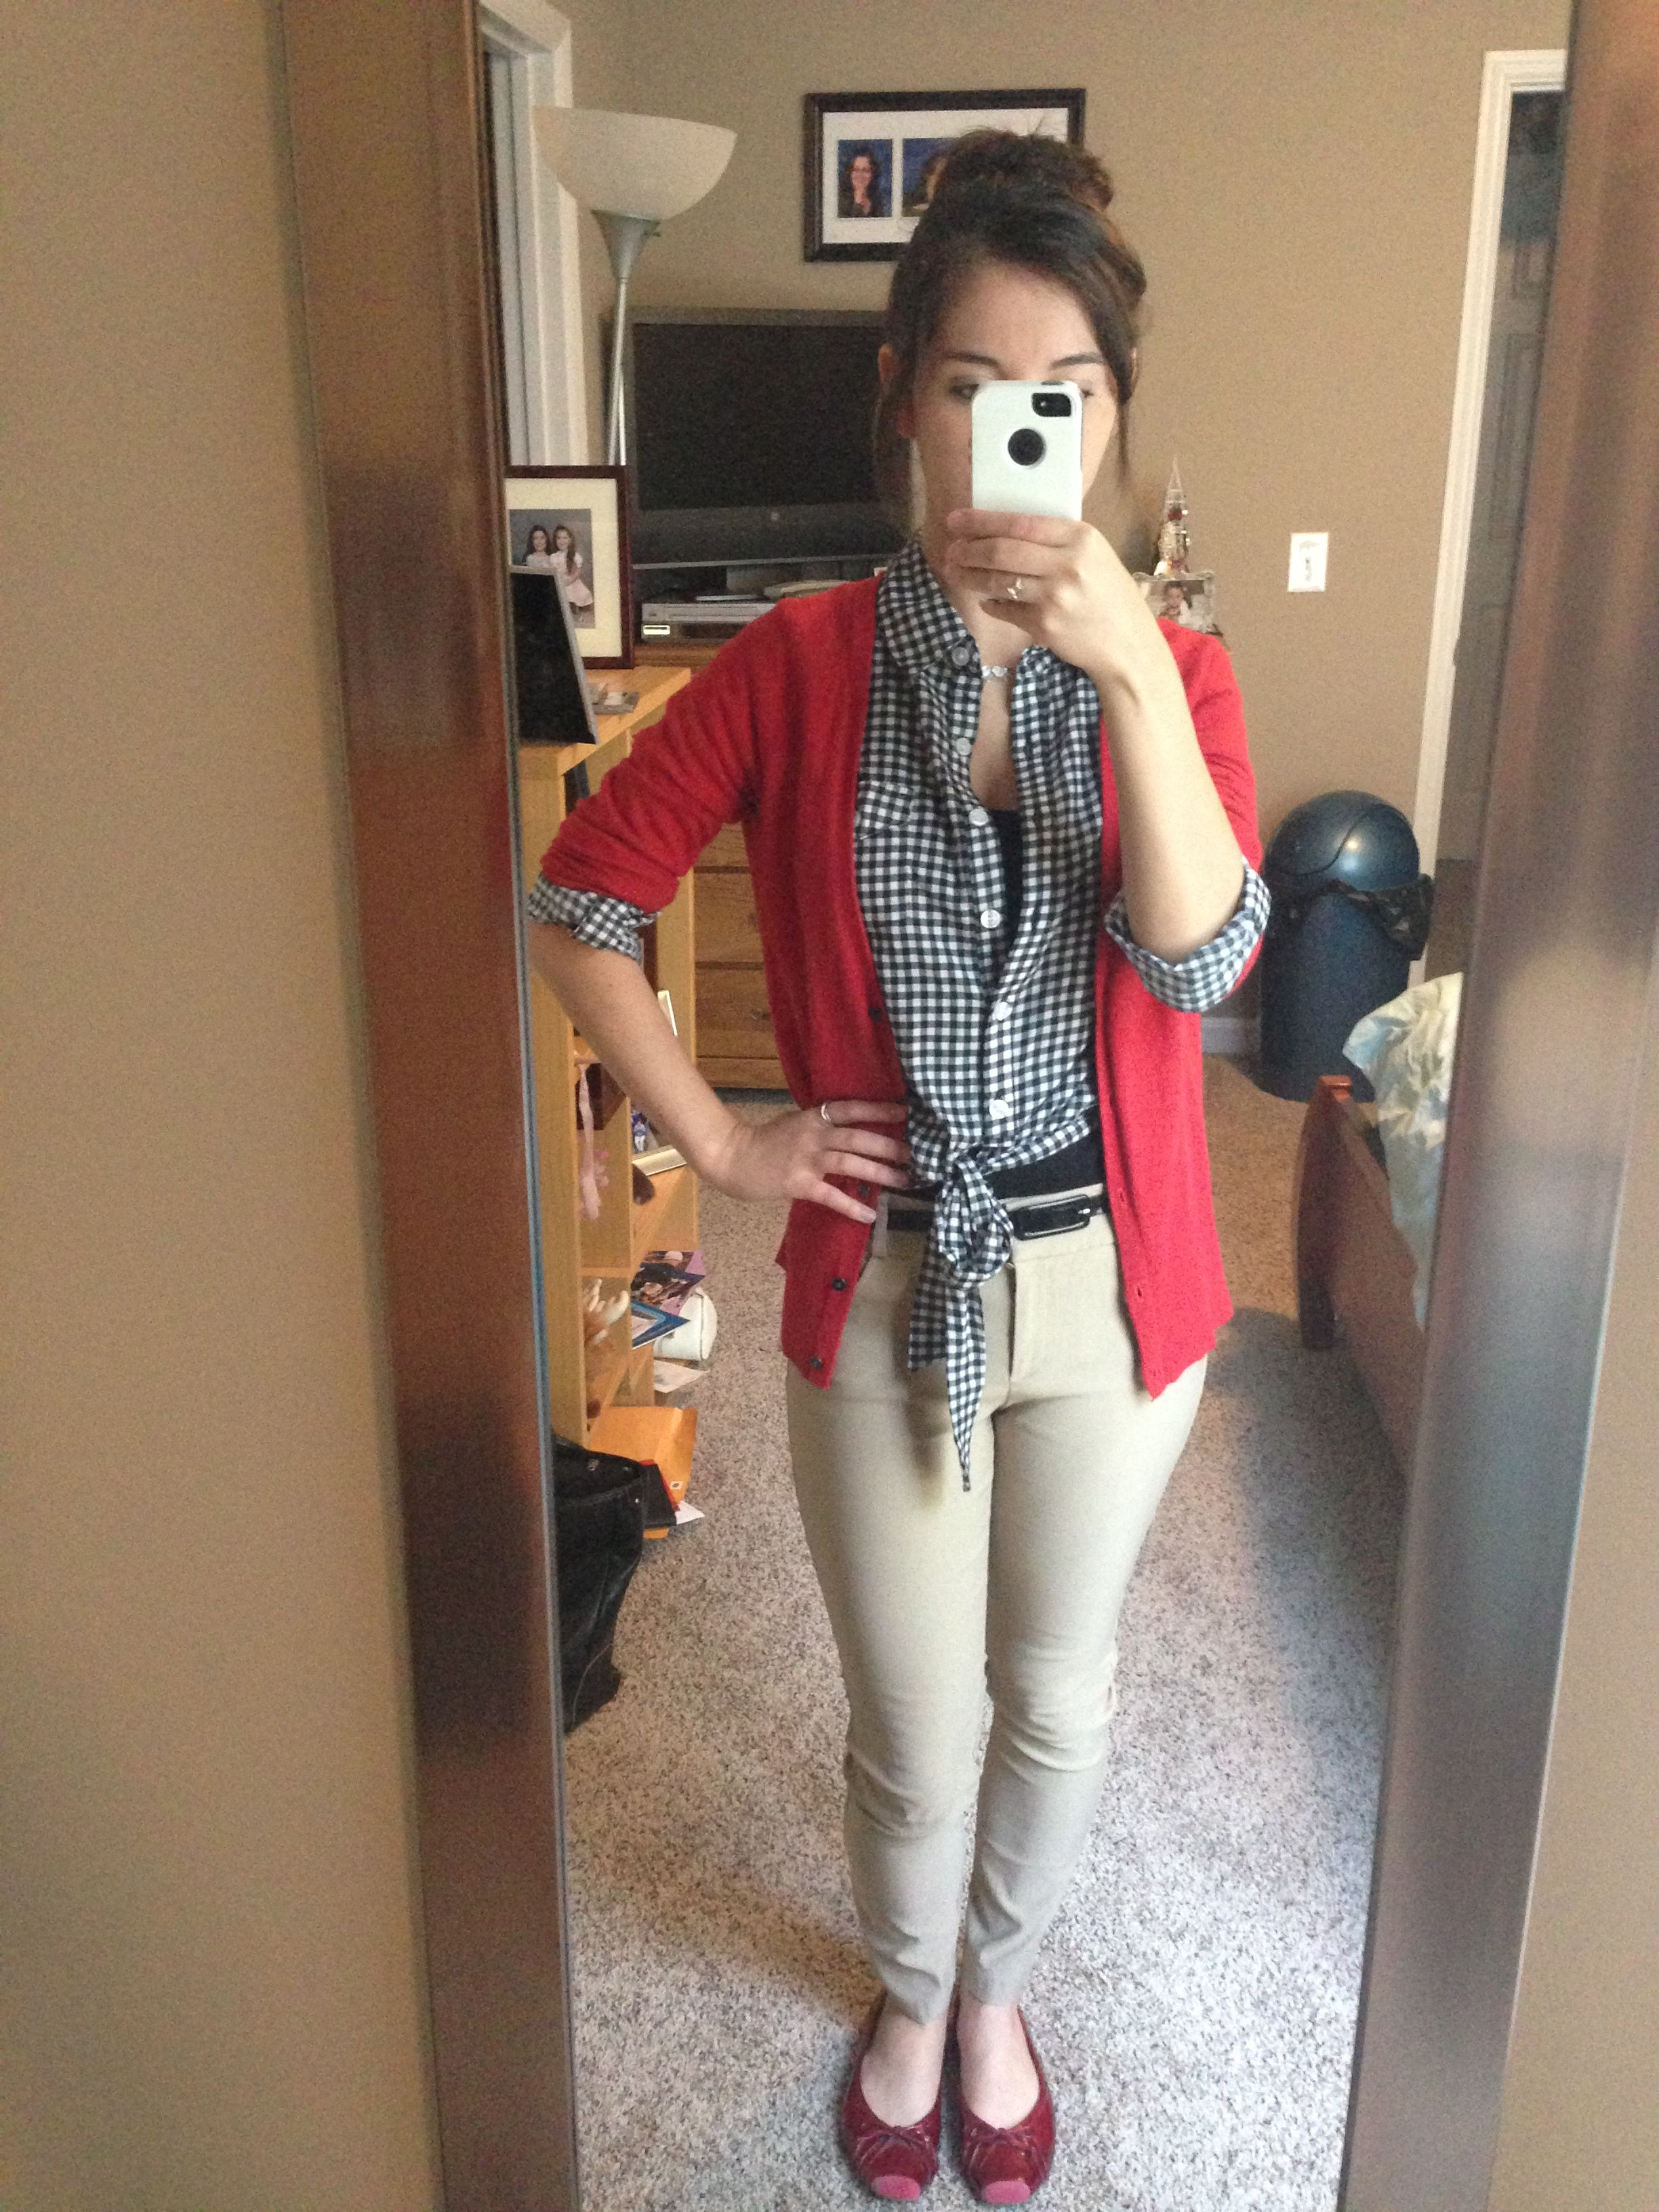 Fingerless gloves at target - My Attempt At Making Red And Khaki Look Good For Work At Target Will